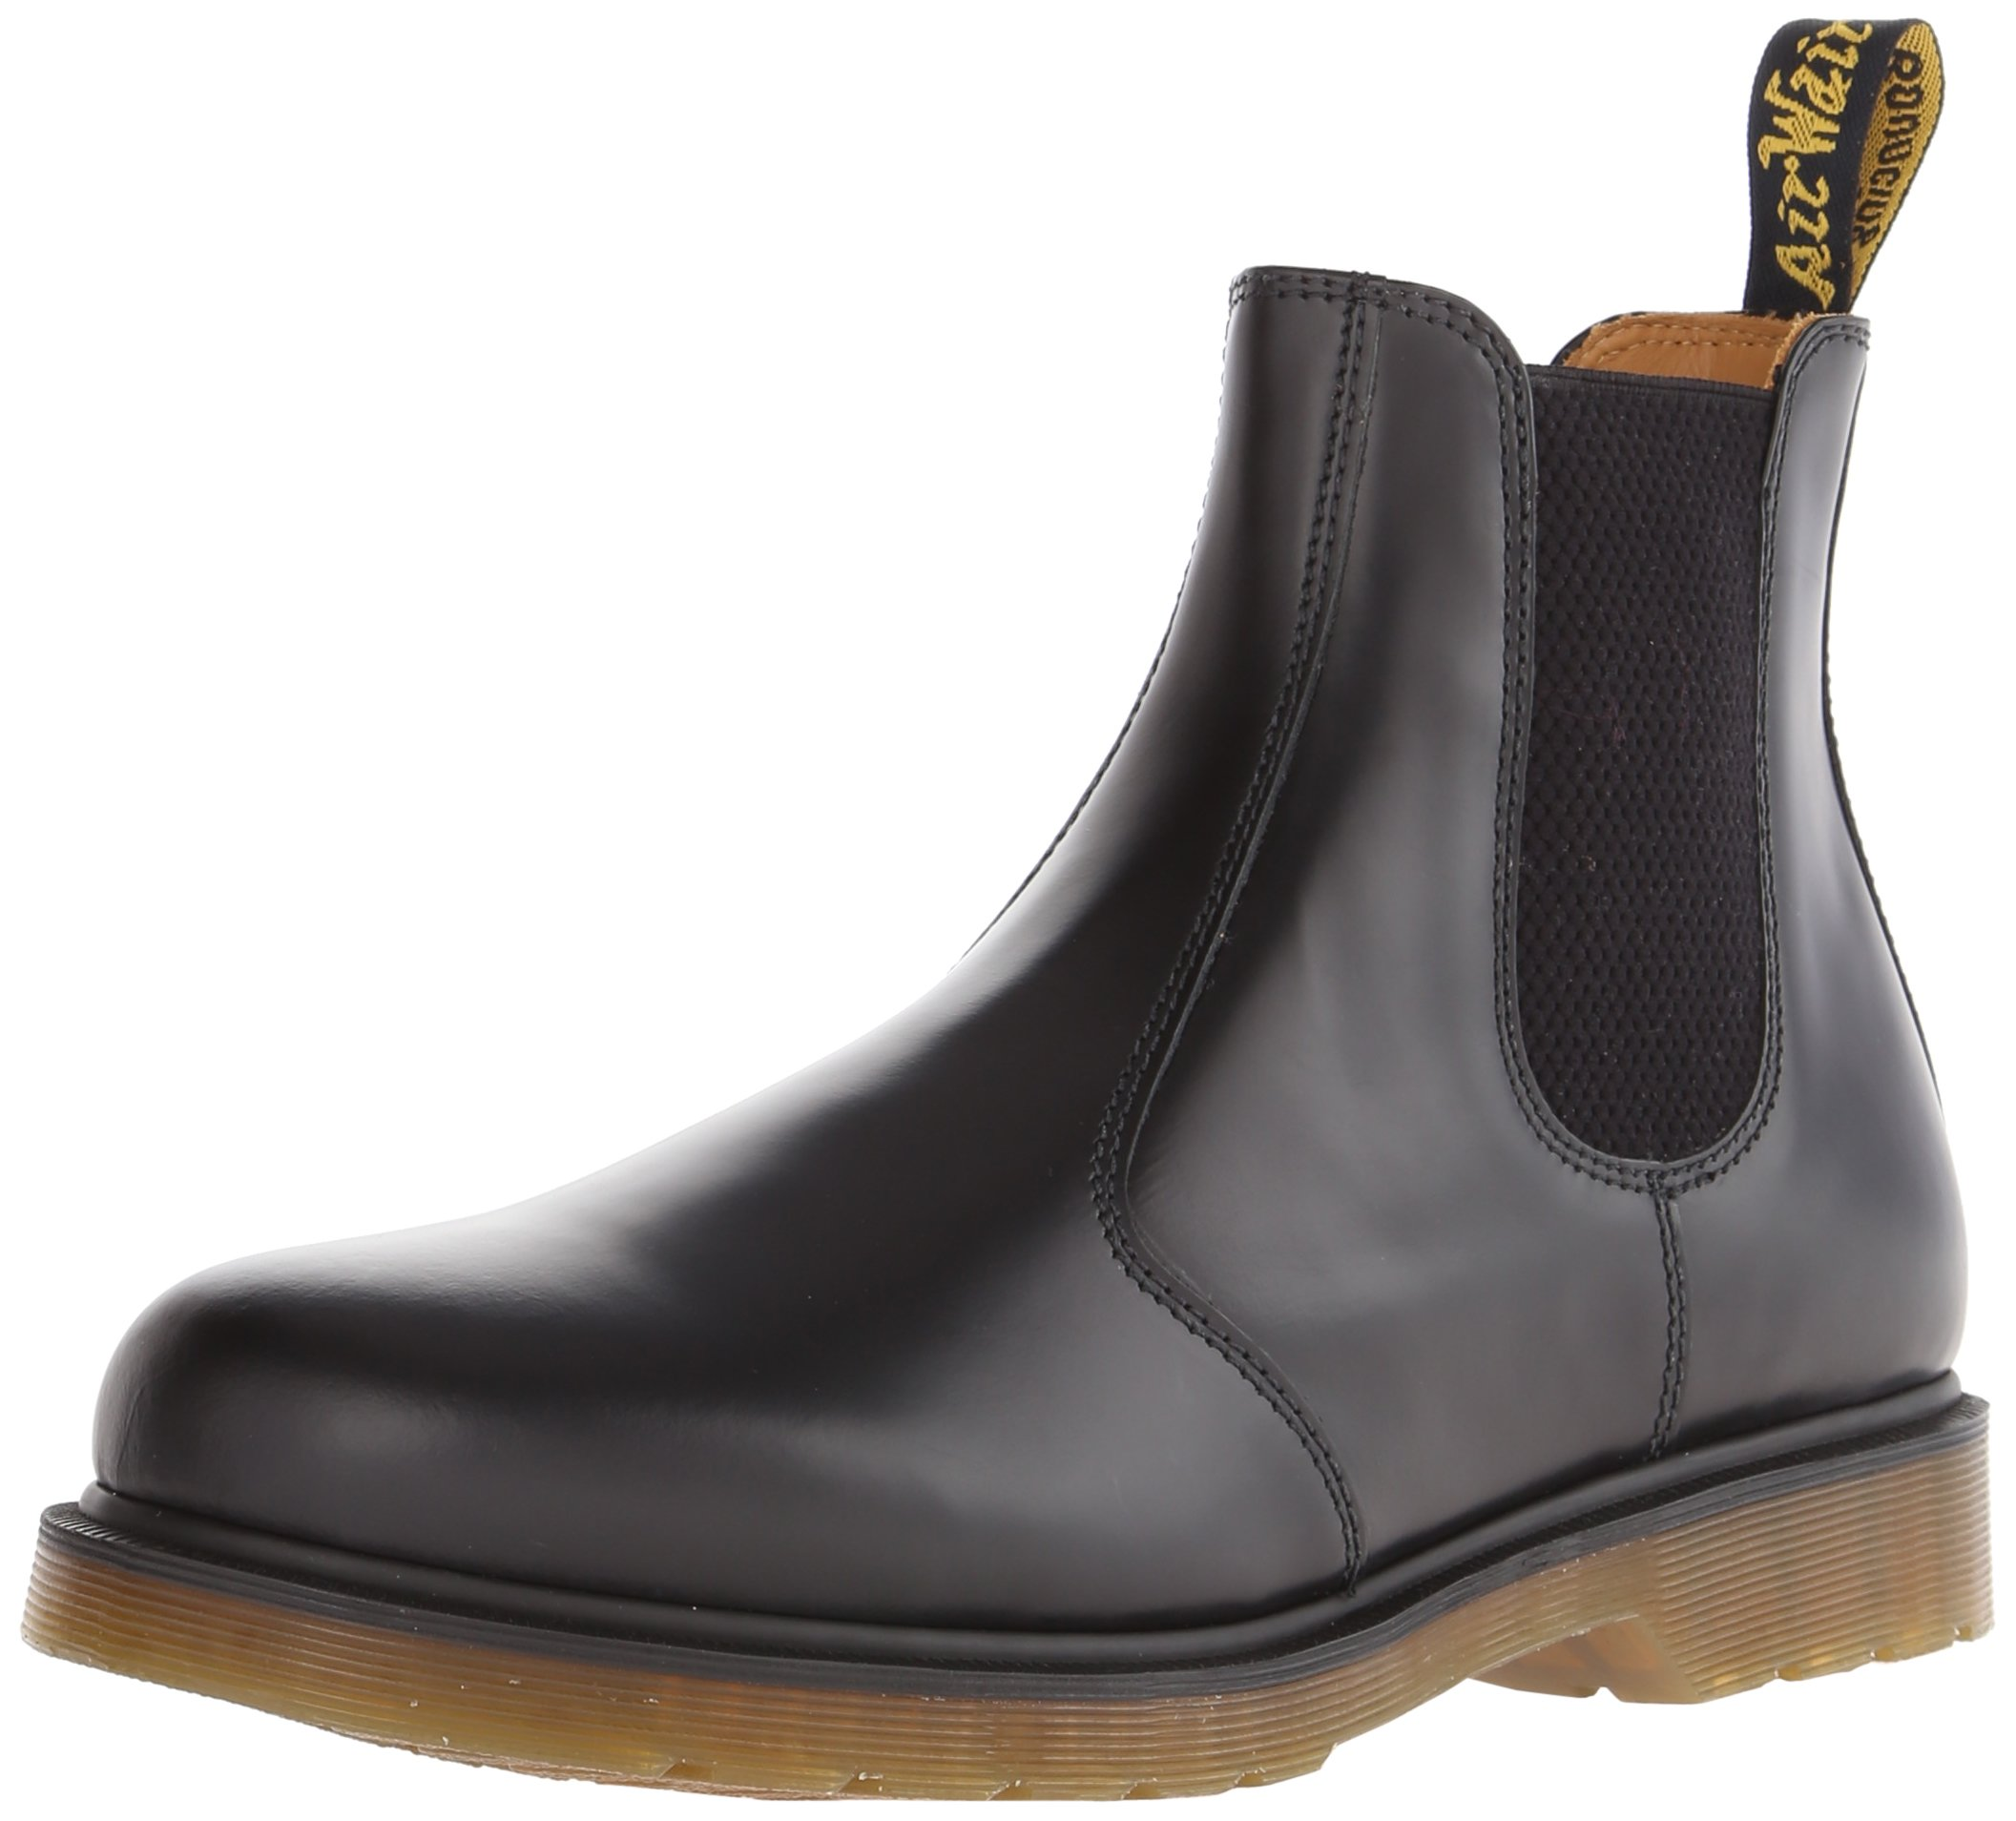 Dr. Martens Air Wair 2976 Round Toe Leather Boot by Dr. Martens Air Wair